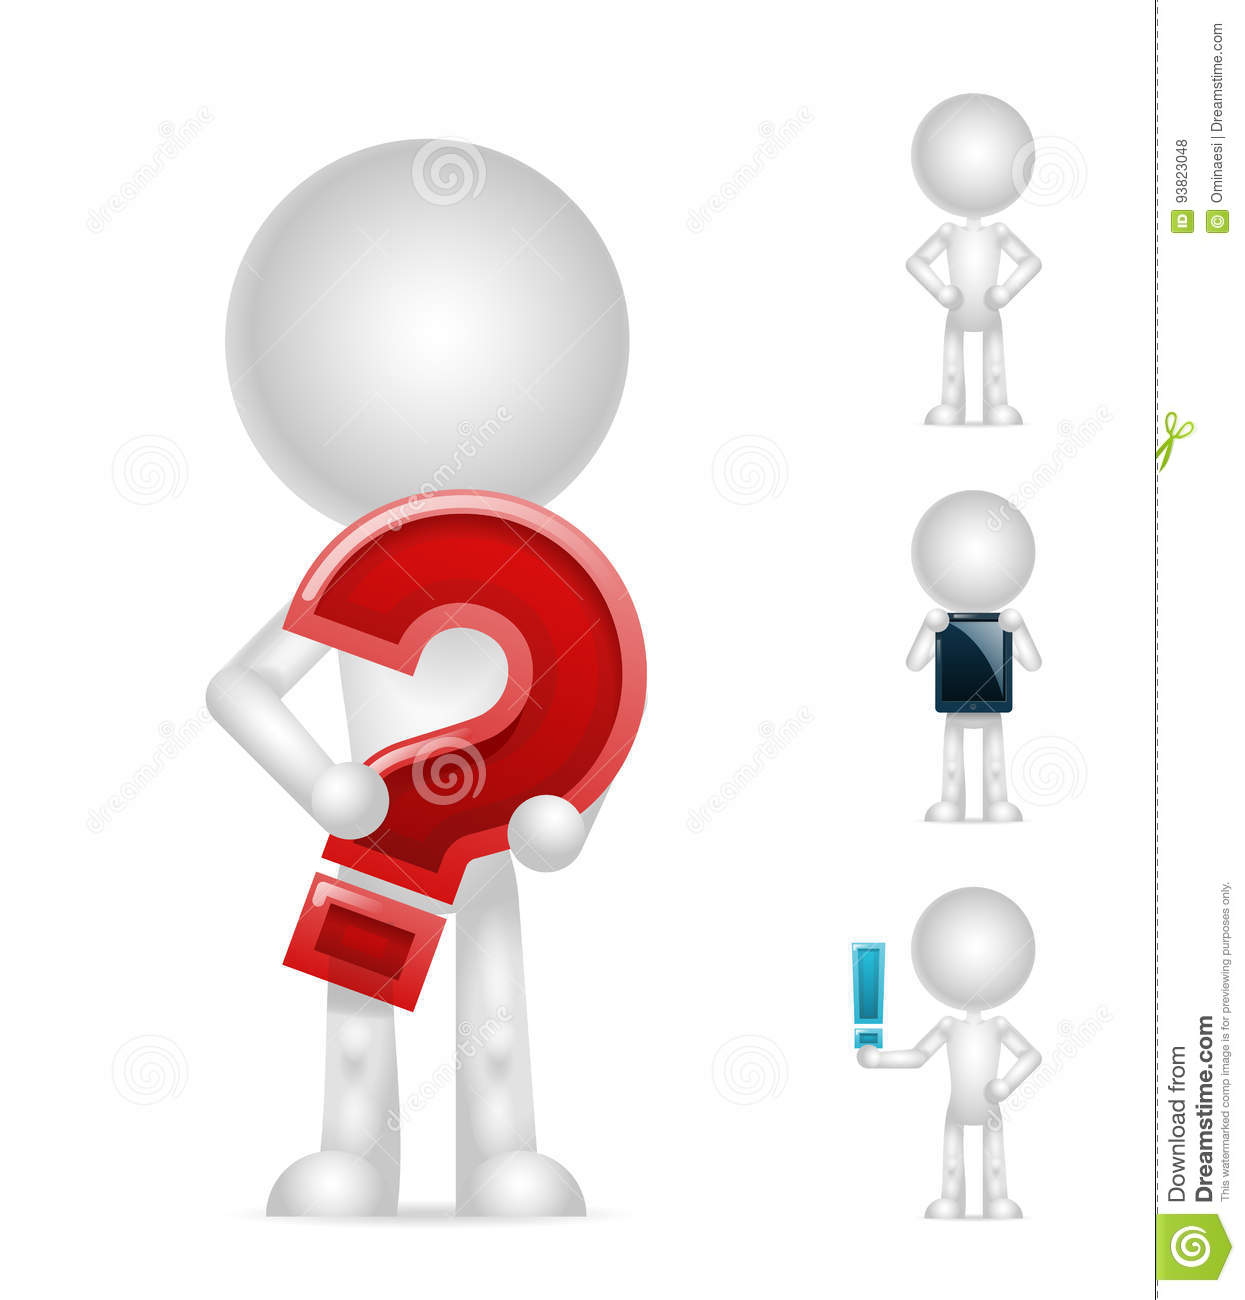 Character Design Questions : Pantomime cartoons illustrations vector stock images